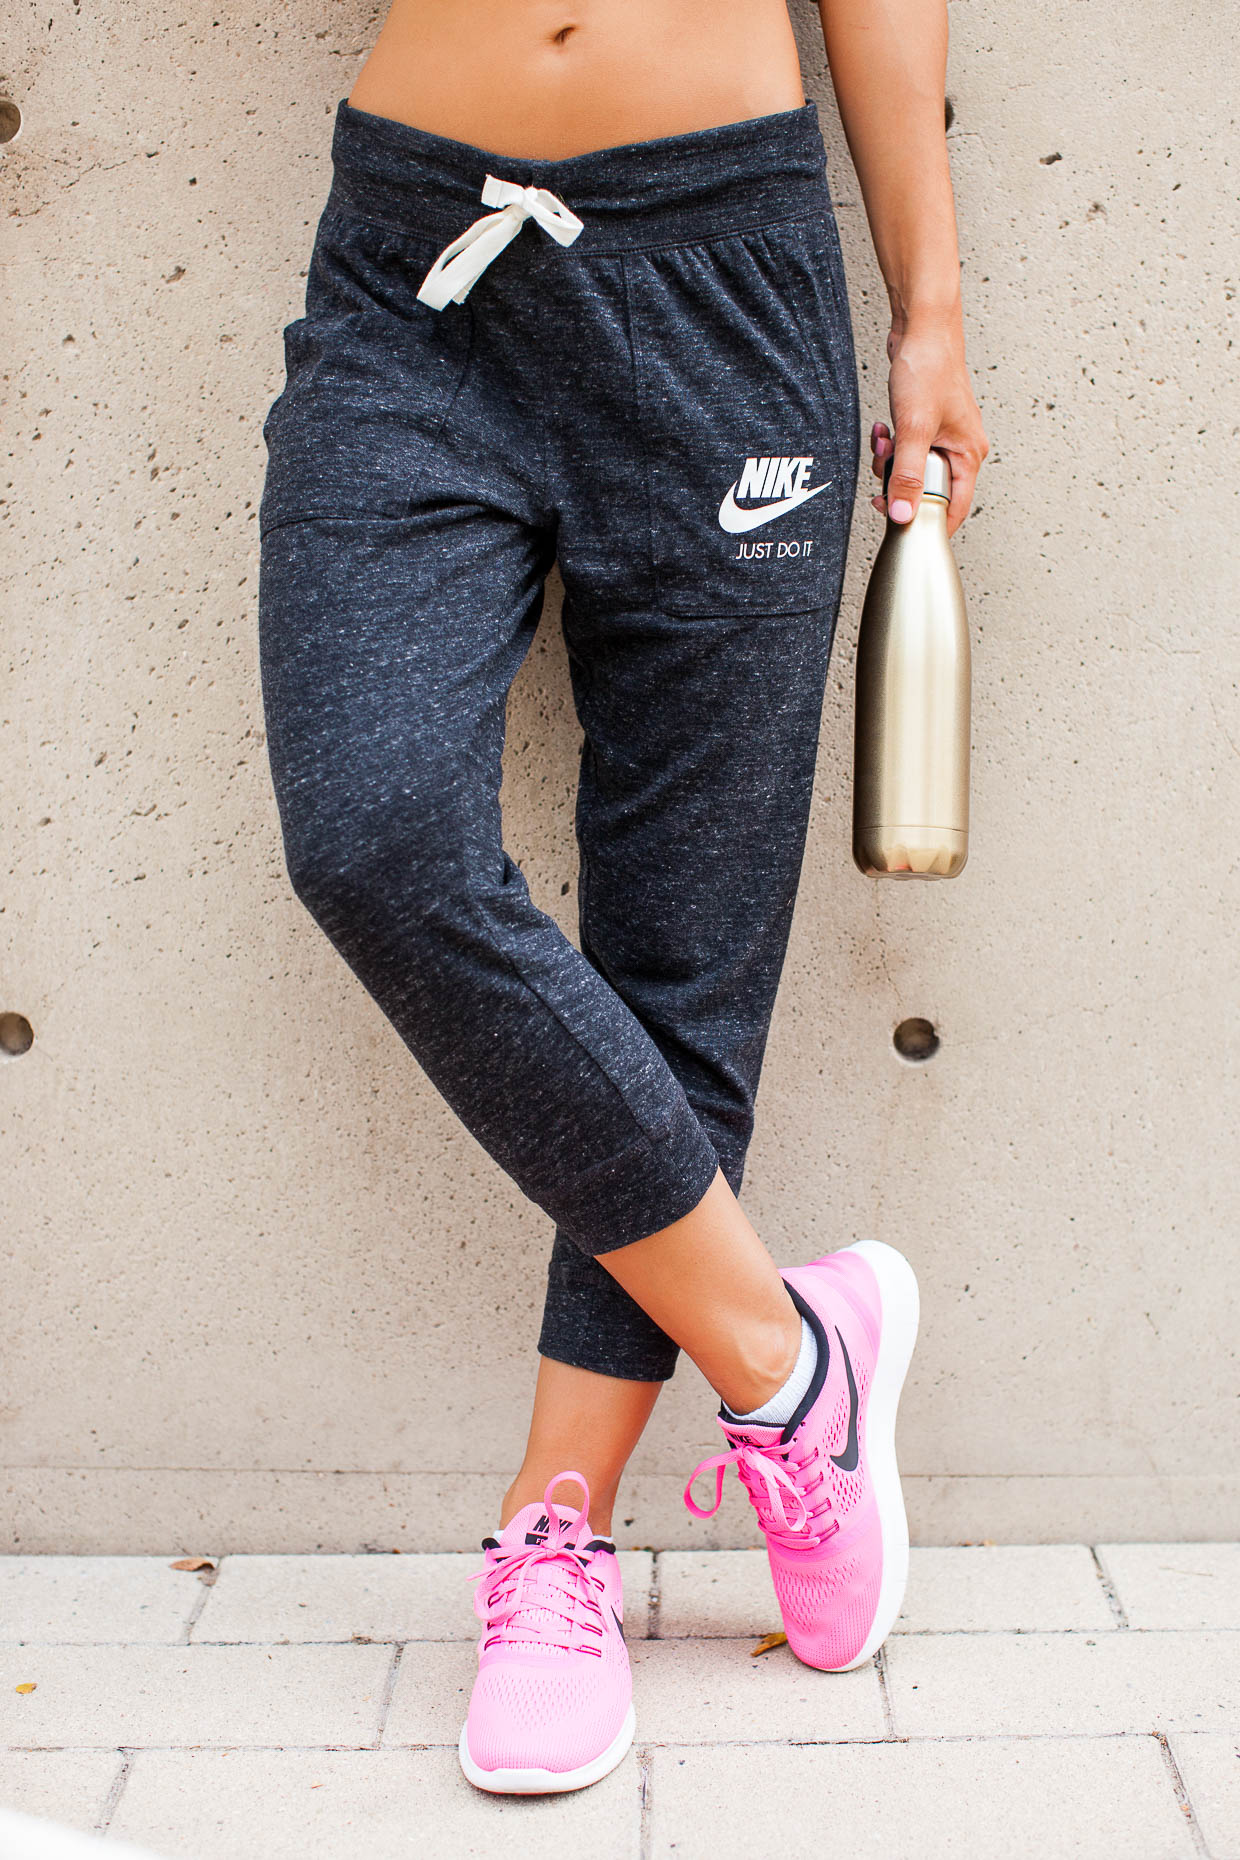 The Darling Detail is sporting Nike 'Gym Vintage' Capris and Nike's 'Free RN' Running Shoes and using a S'well 'Sparkling Champagne' Stainless Steel Water Bottle.